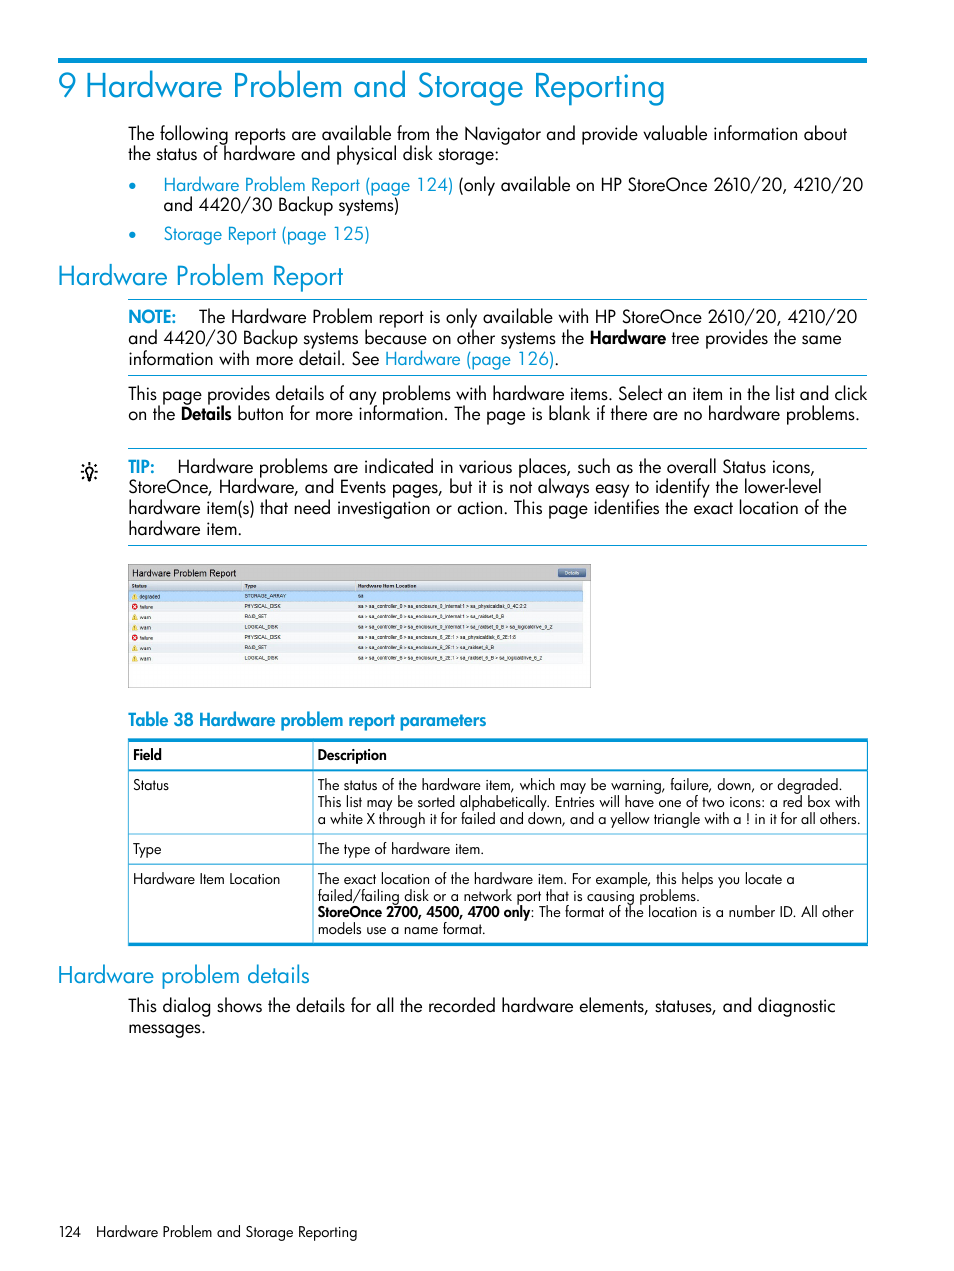 9 hardware problem and storage reporting, Hardware problem report, Hardware  problem details | HP